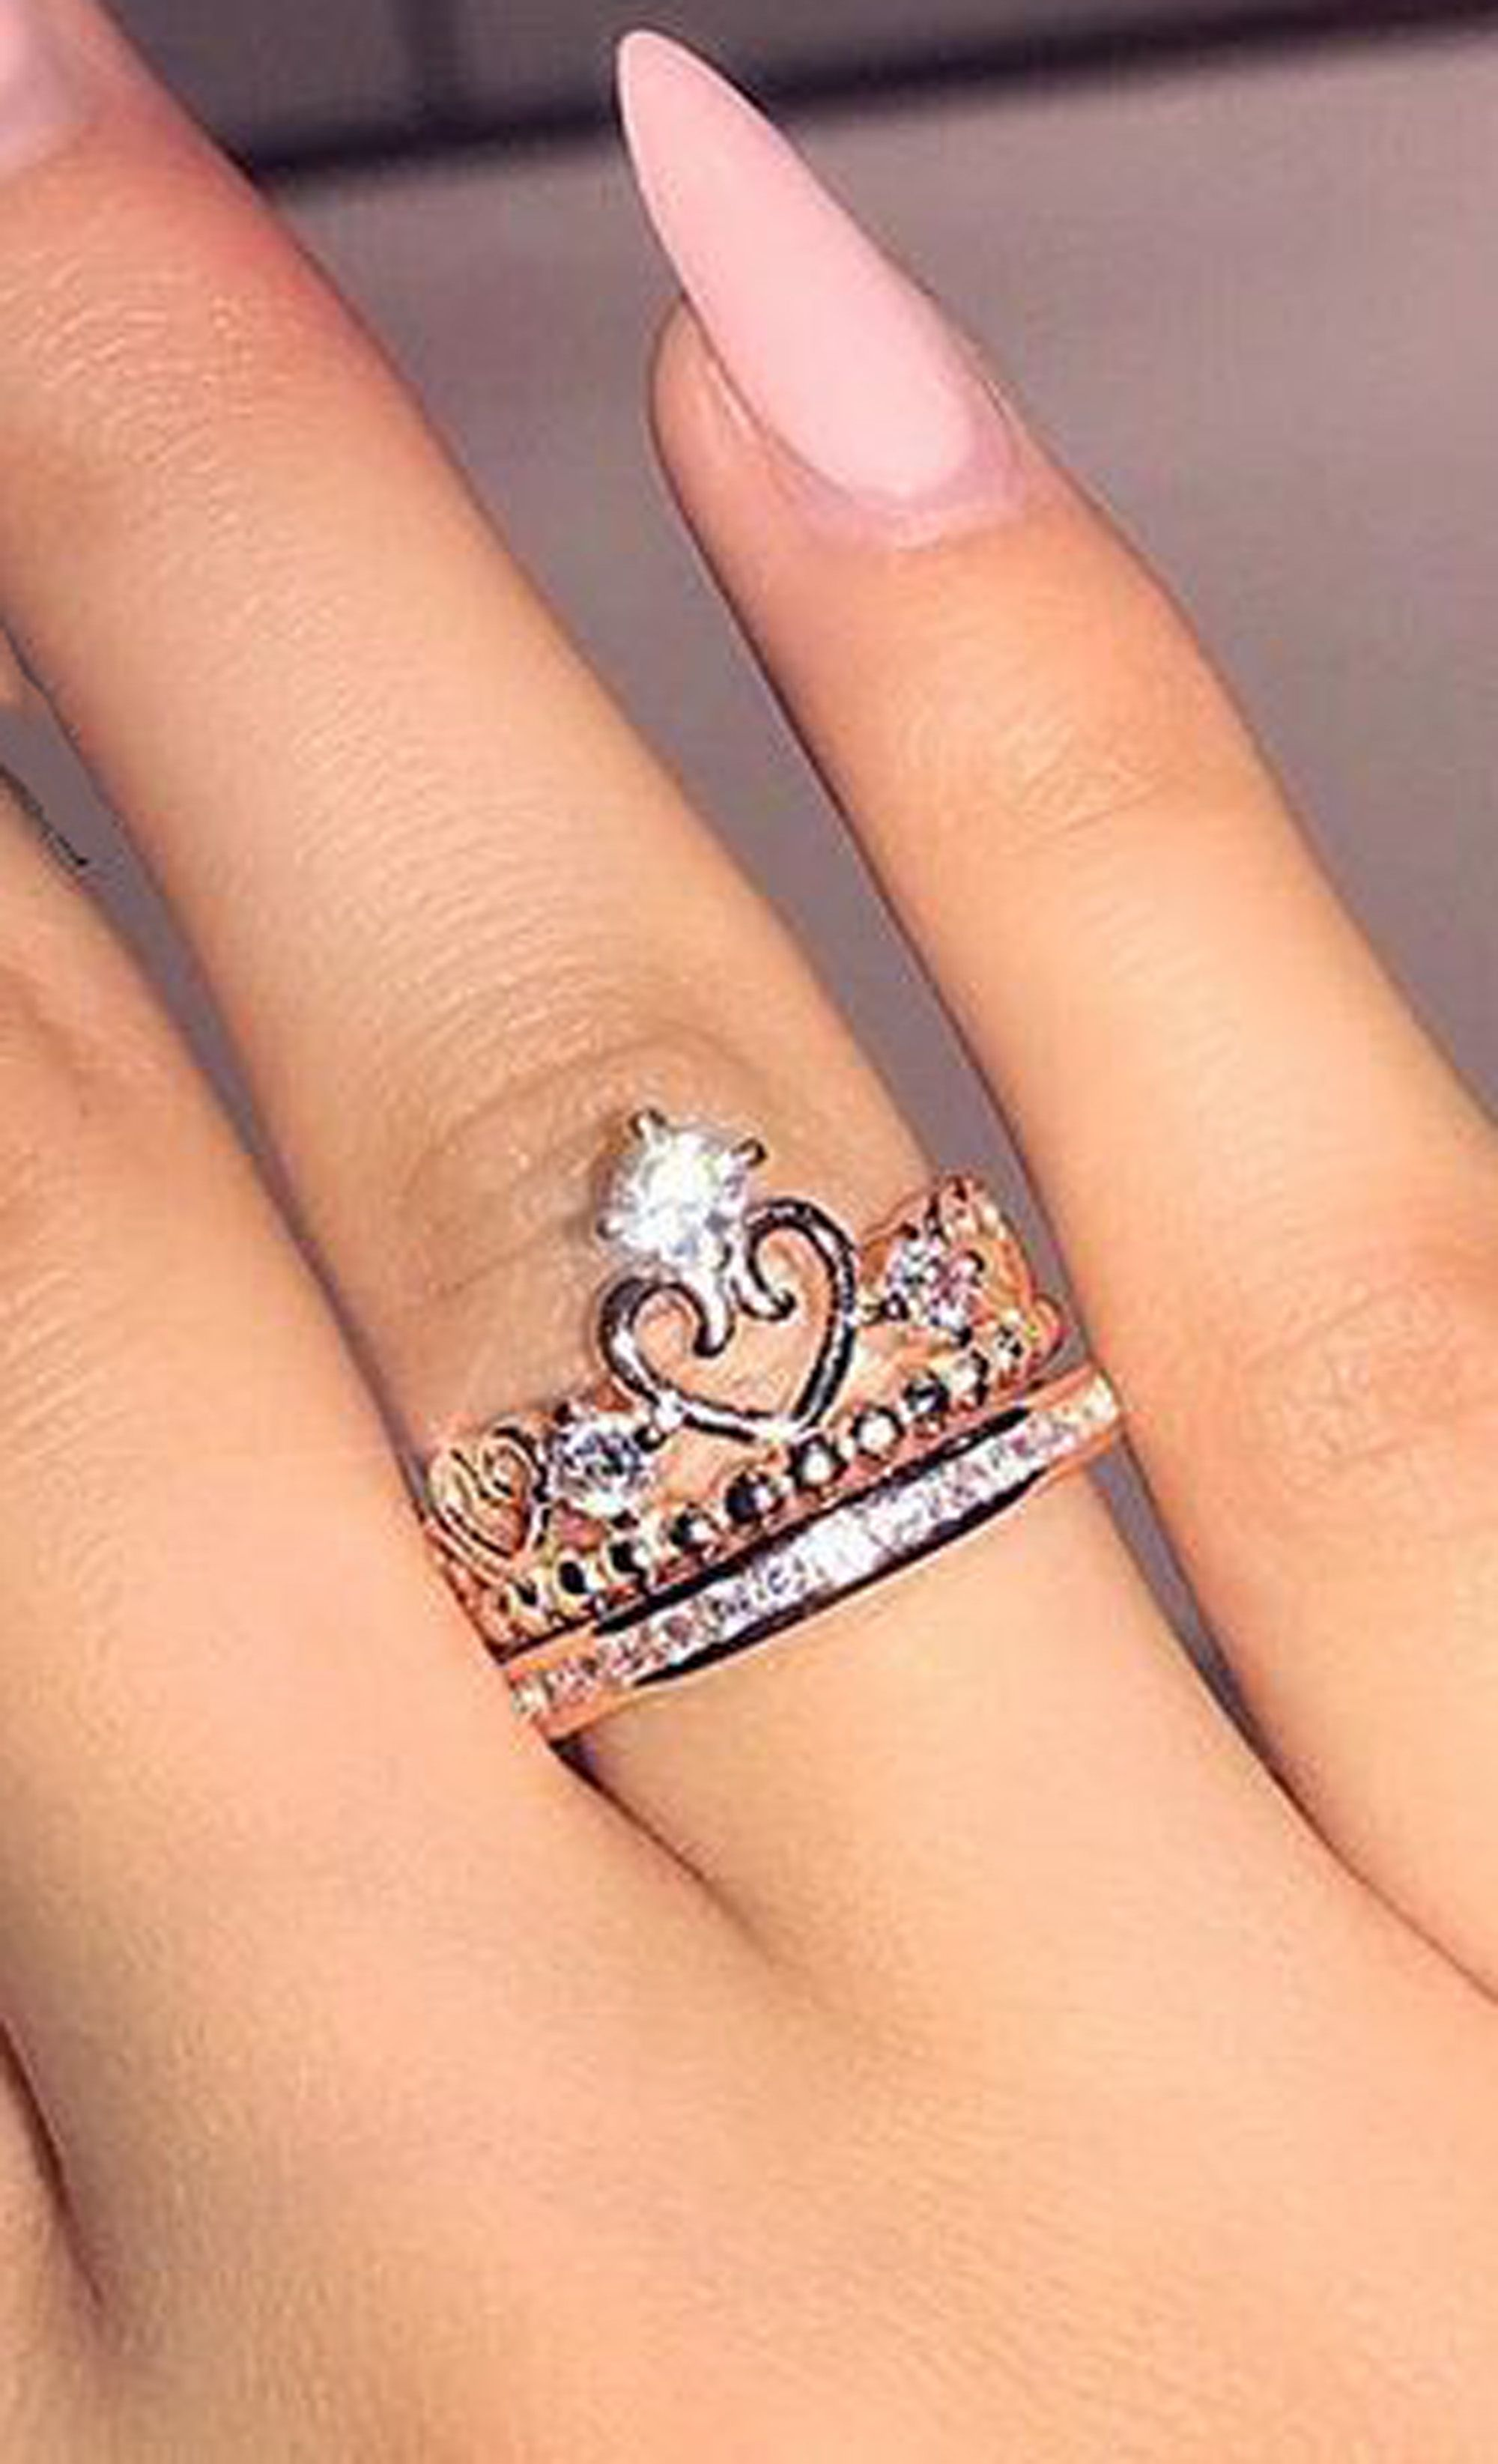 f46ccc38b Adrianna Cute Crystal Princess Crown Promise Fashion Ring in Silver ...